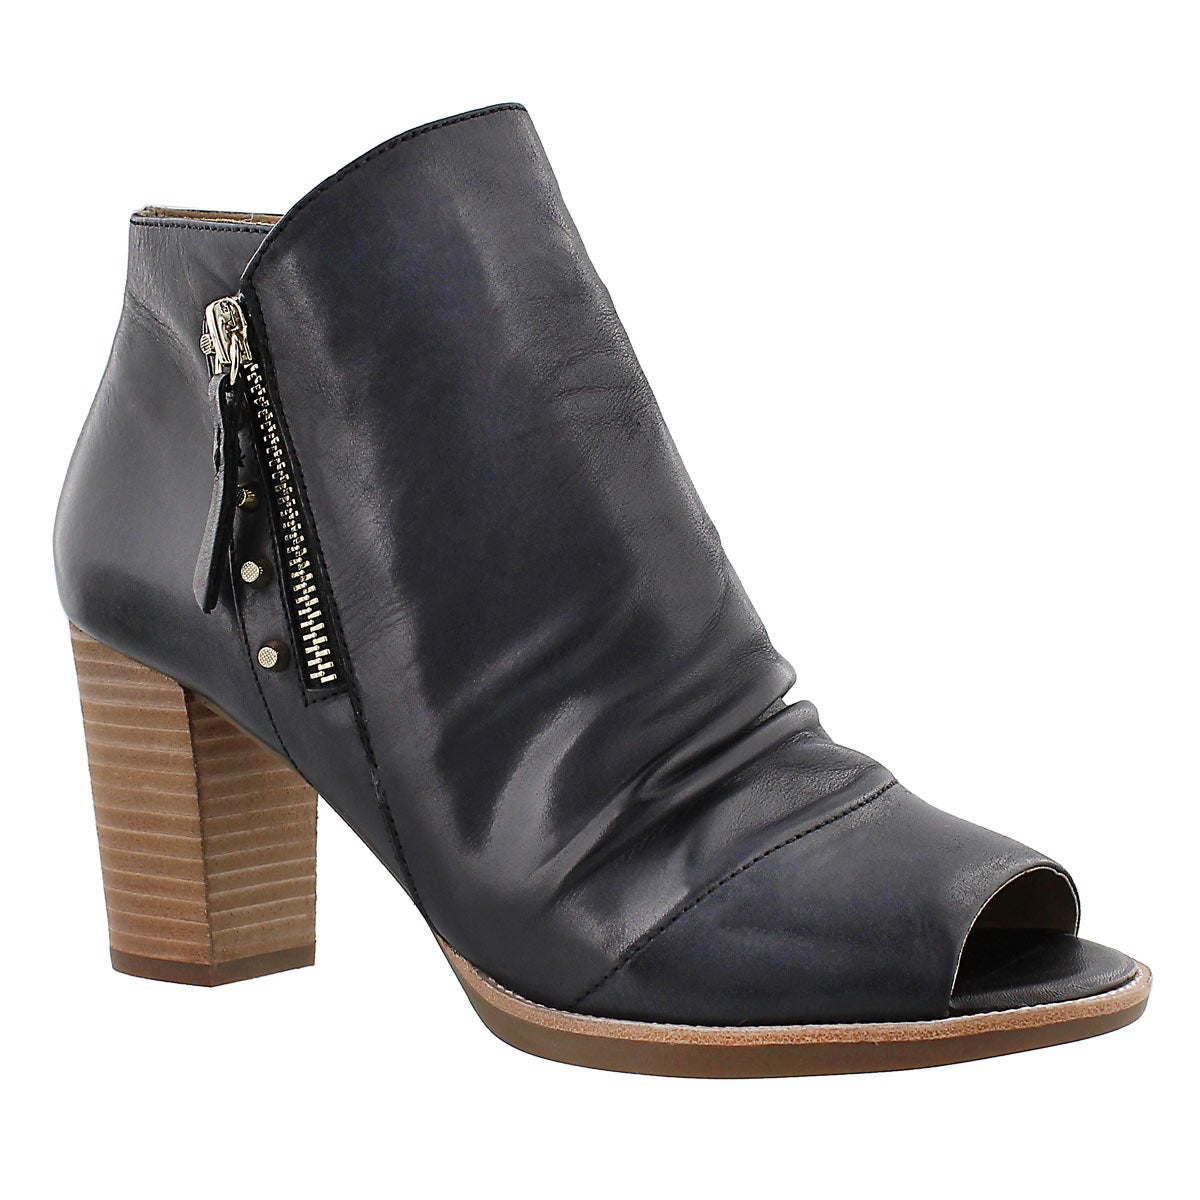 Lds New Callie dark grey peep toe heel